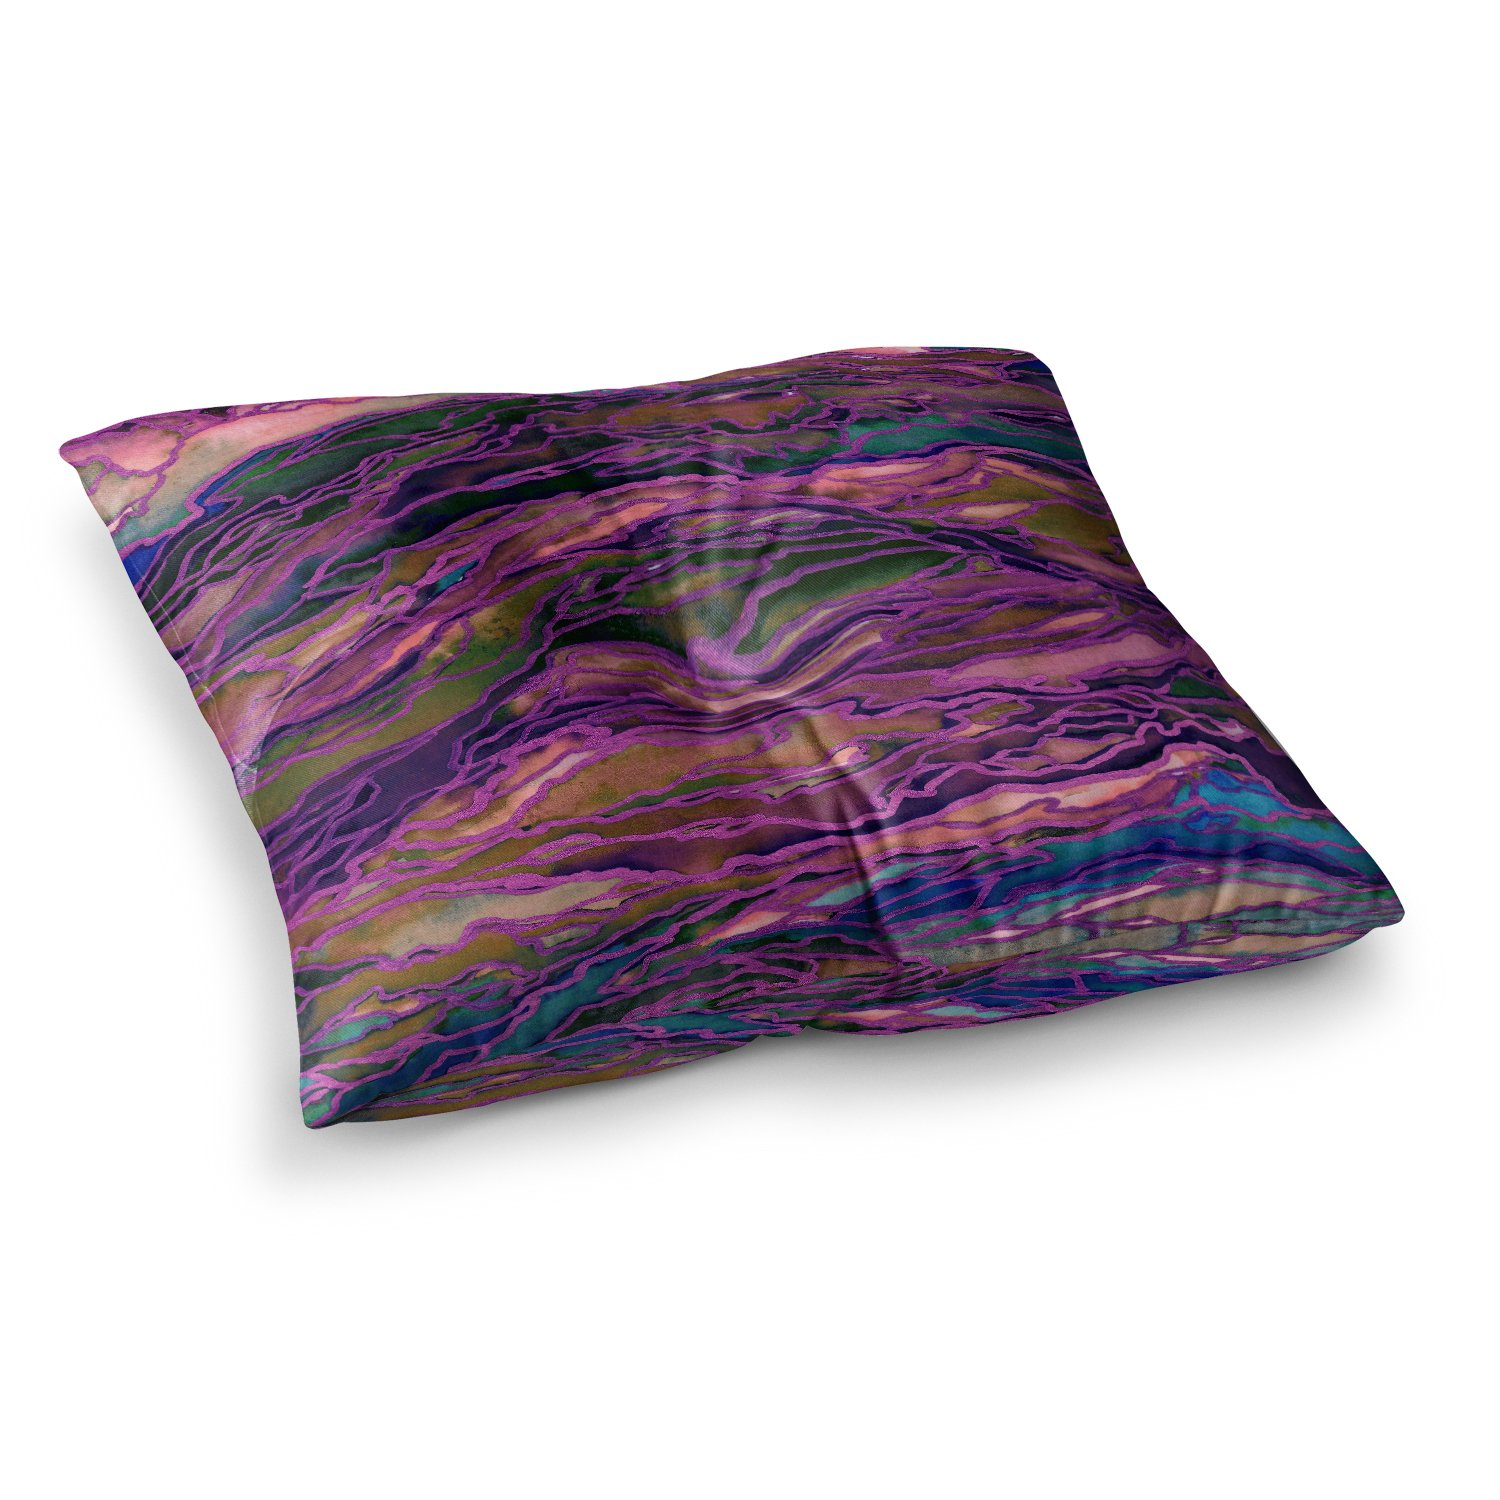 23 x 23 Square Floor Pillow Kess InHouse EBI Emporium Marble Idea-Rich Jewel Tone Purple Pink